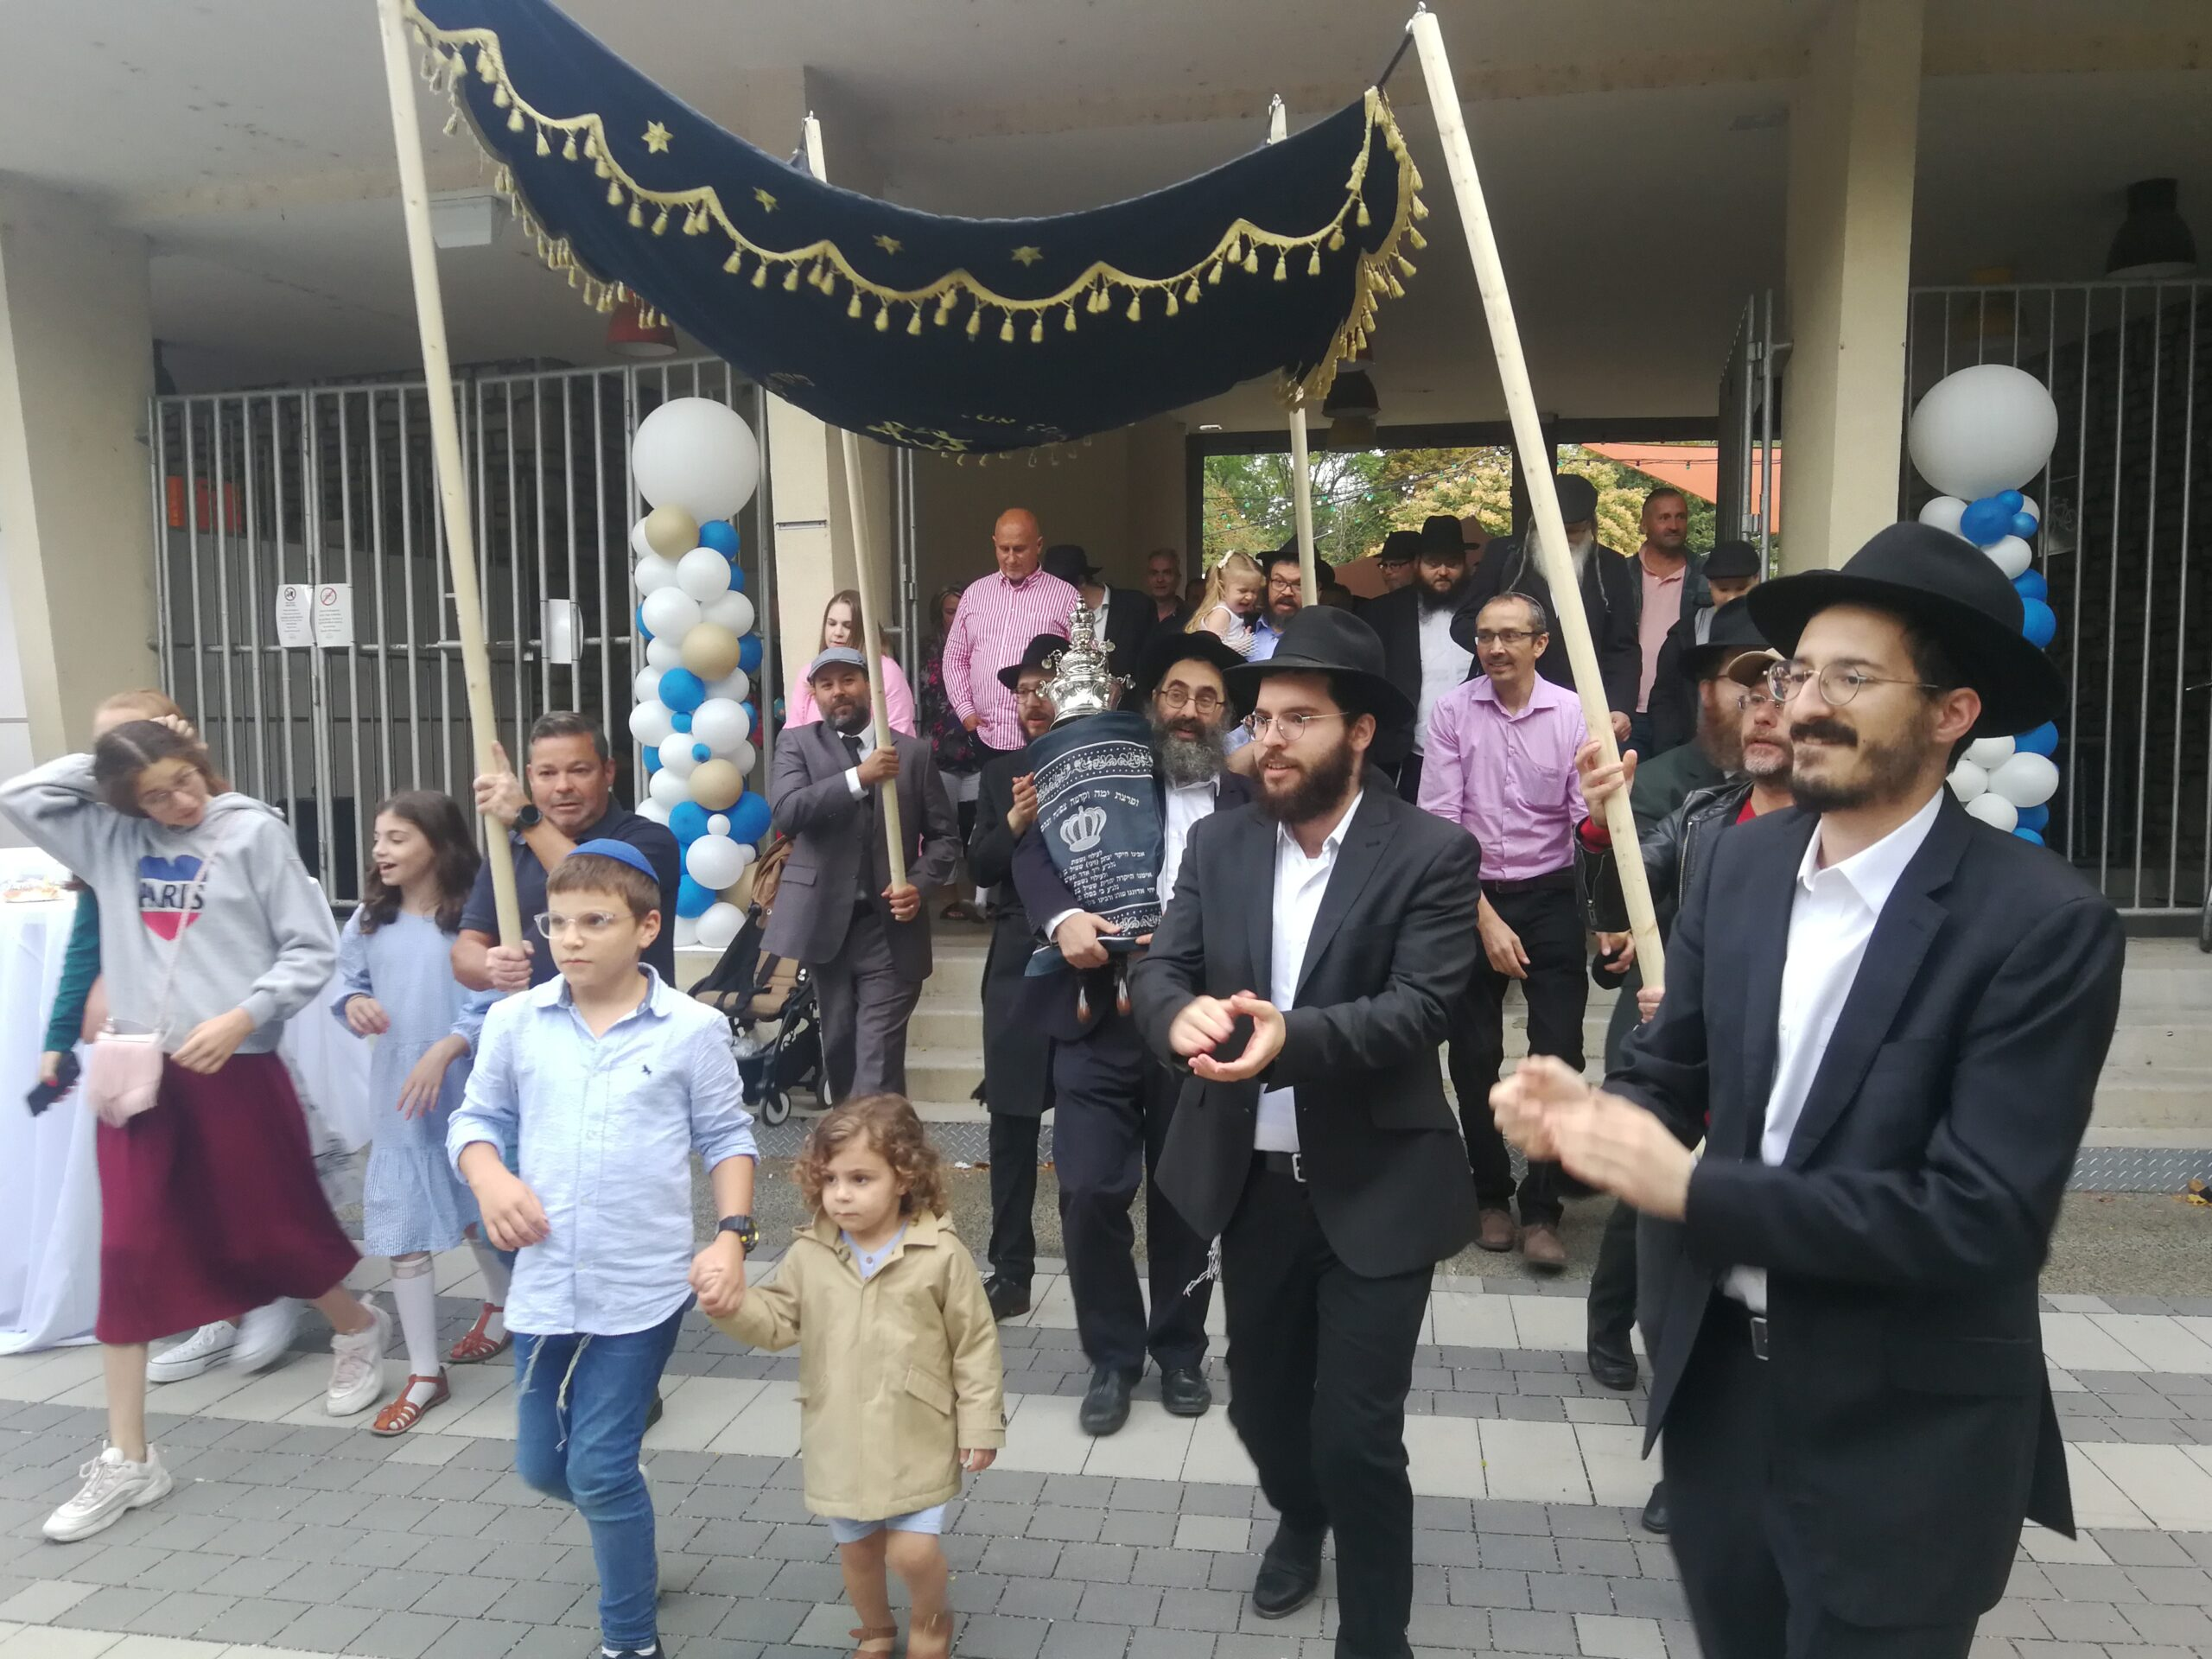 EMIH continued its Synagogue Week with the Sólet Festival in Újbuda